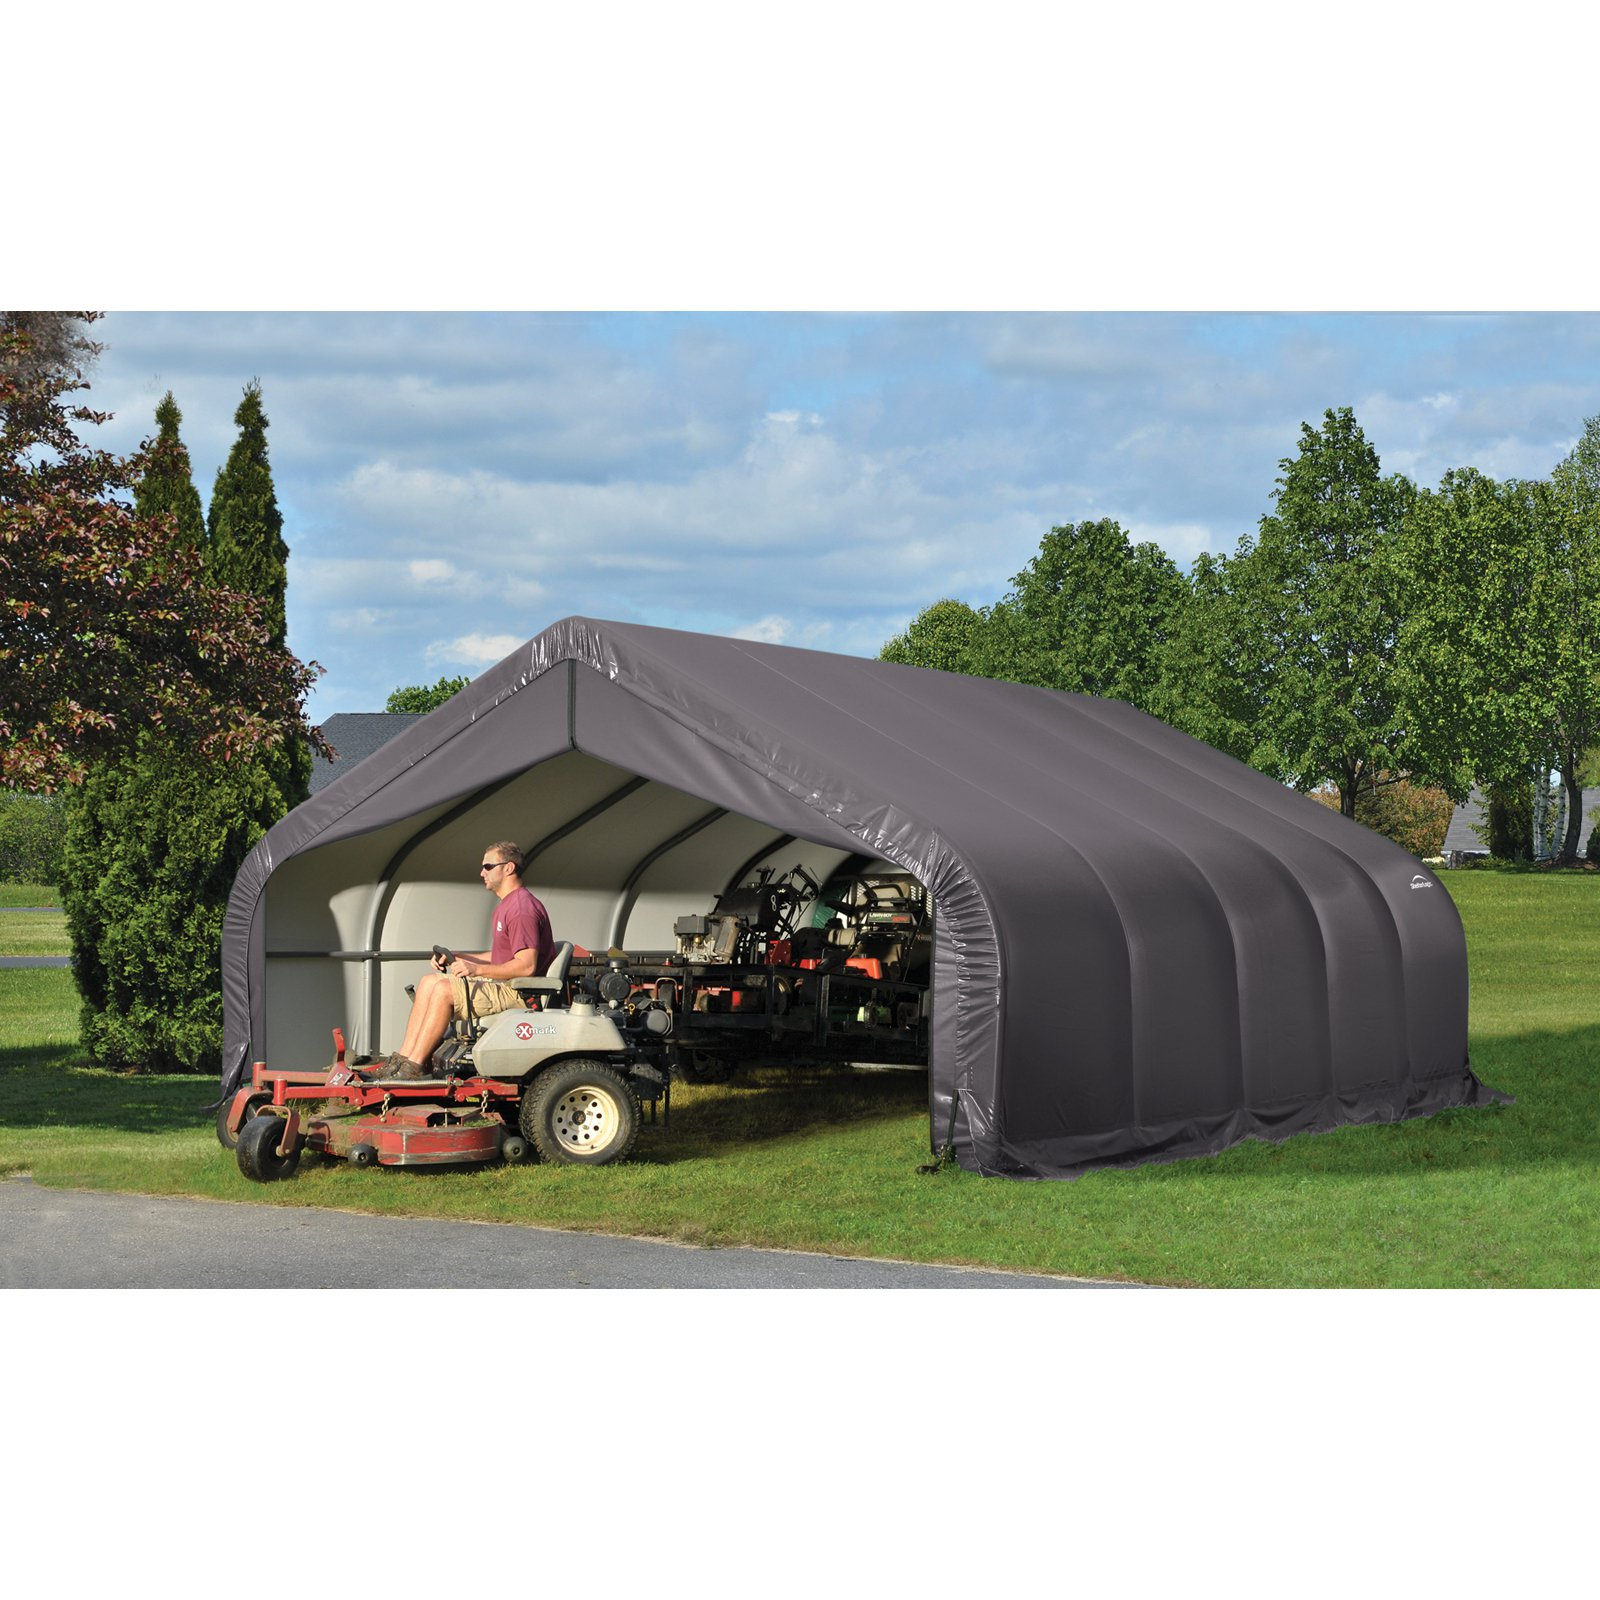 Shelterlogic 18' x 28' x 11' Peak Style Shelter, Green